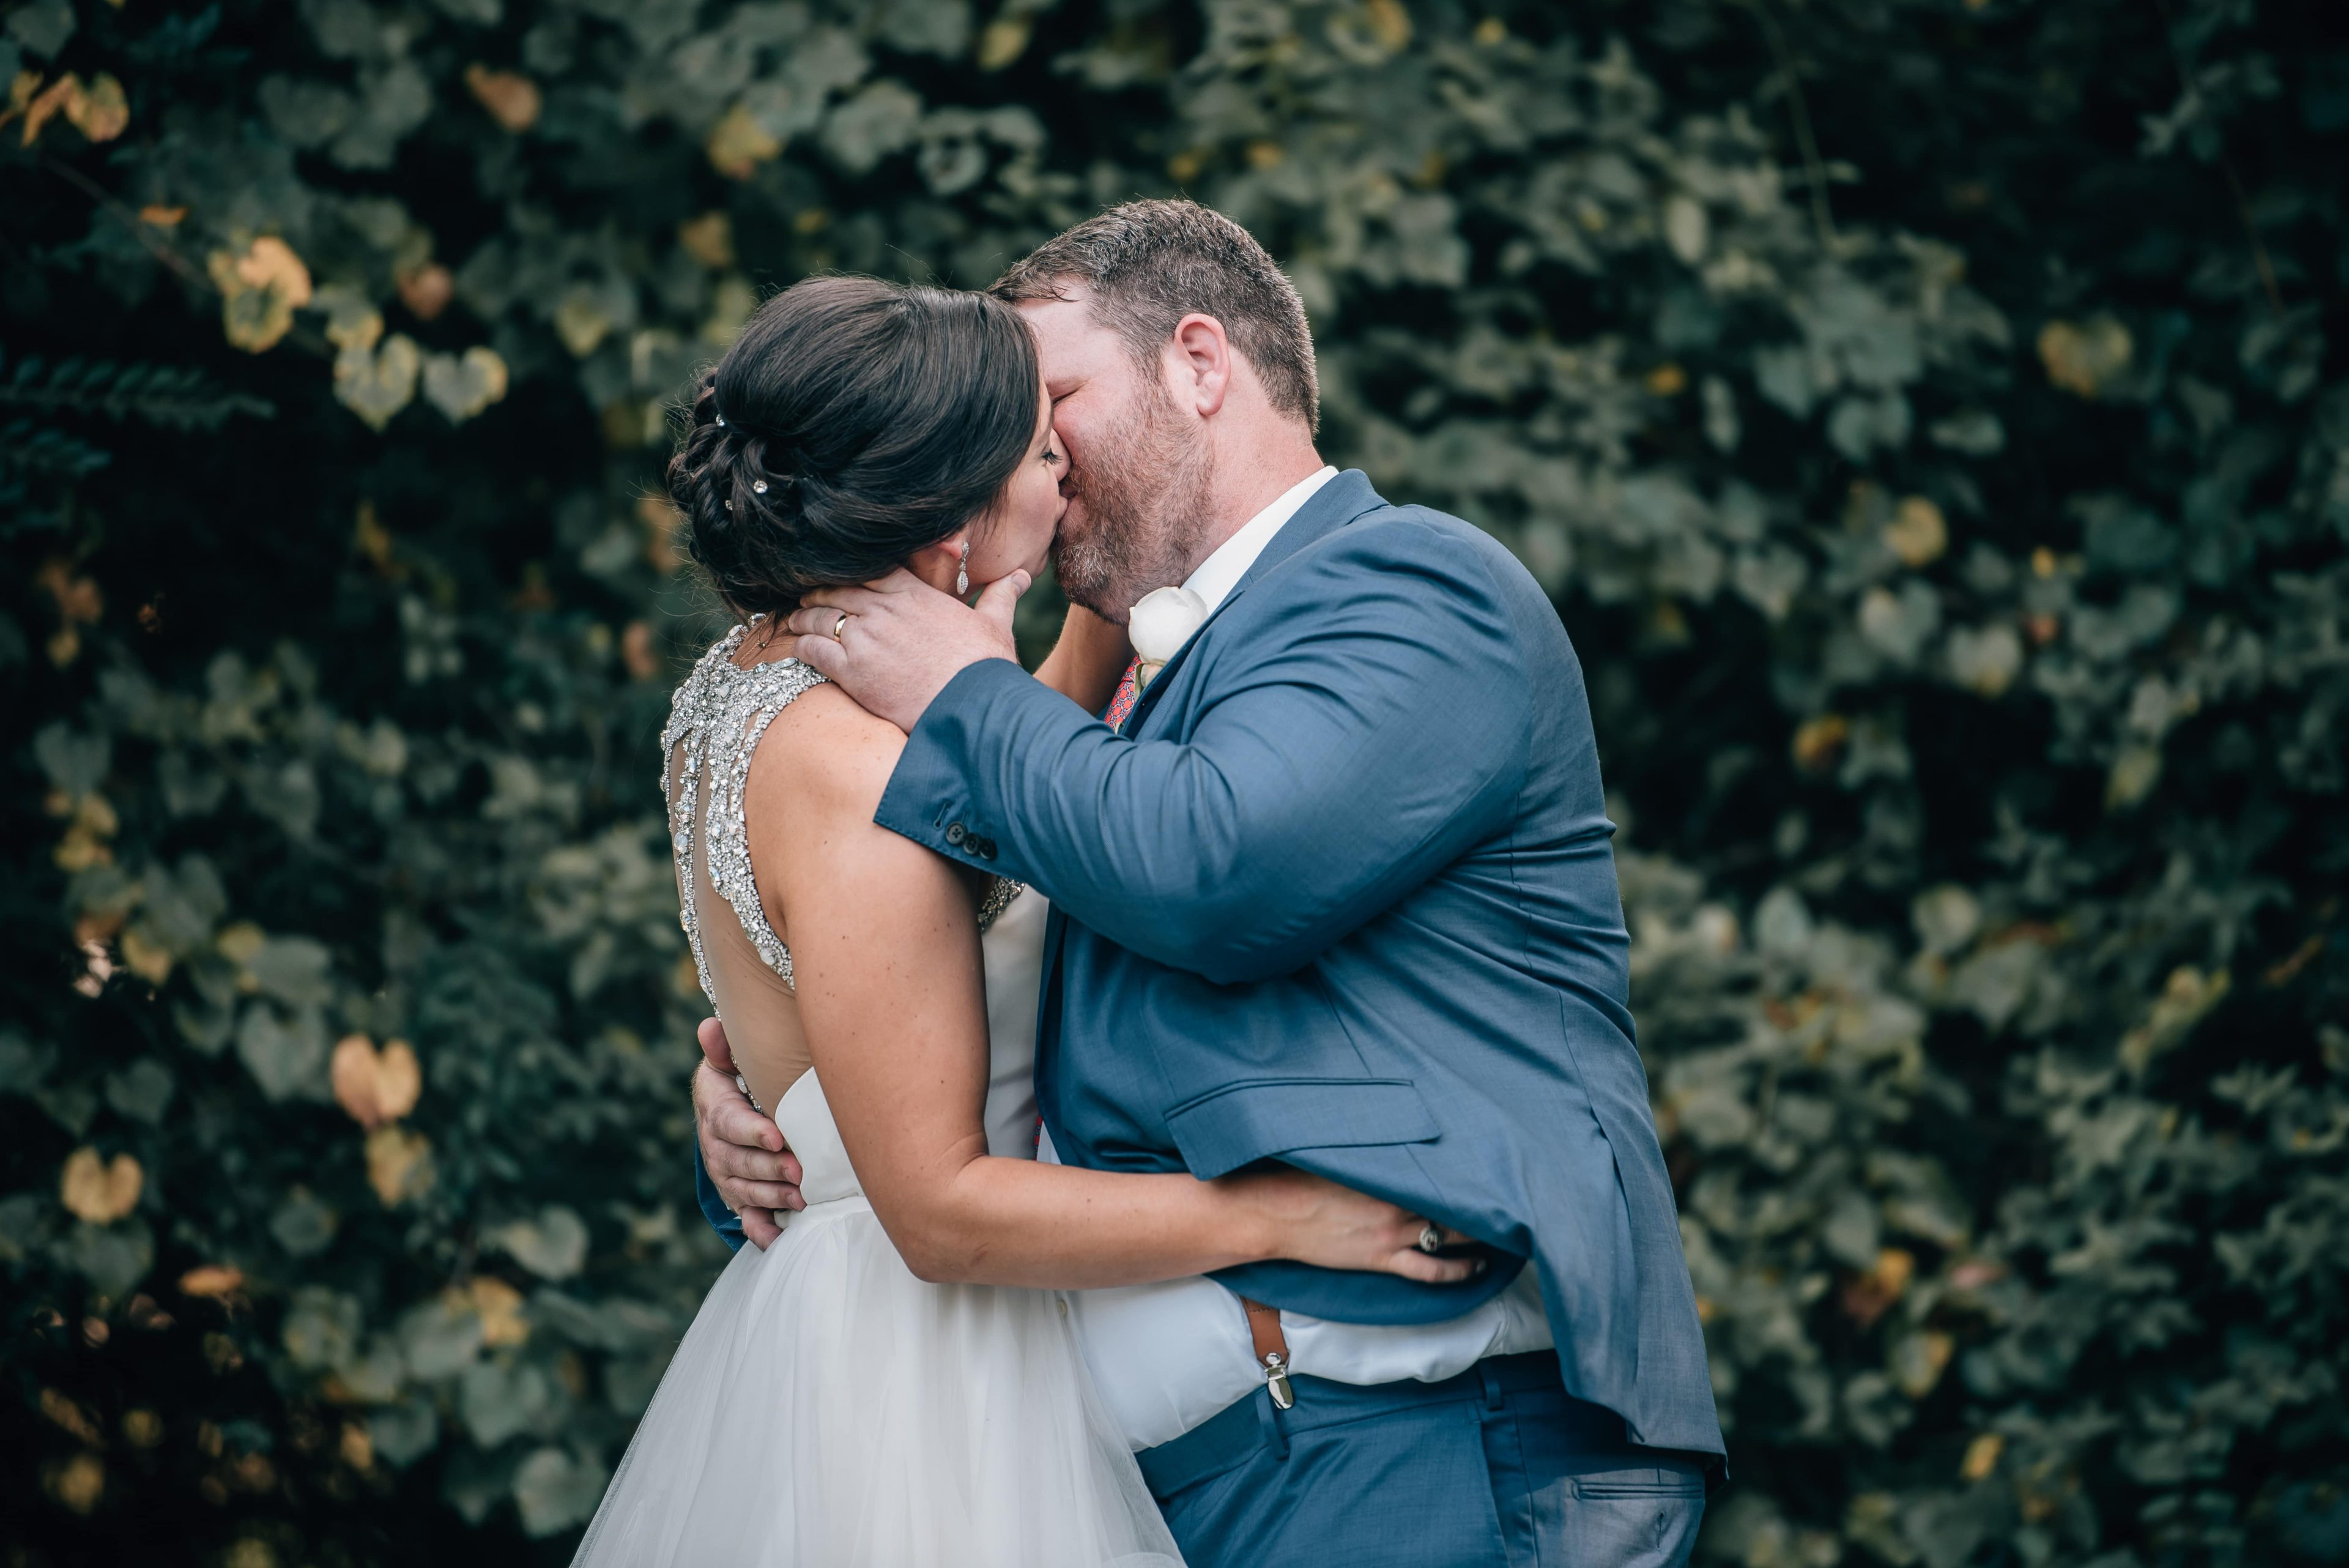 Bride wears a stunning dress by Hayden Olivia with gem details on the back as she kisses her groom during their summer wedding at The Ivy Place